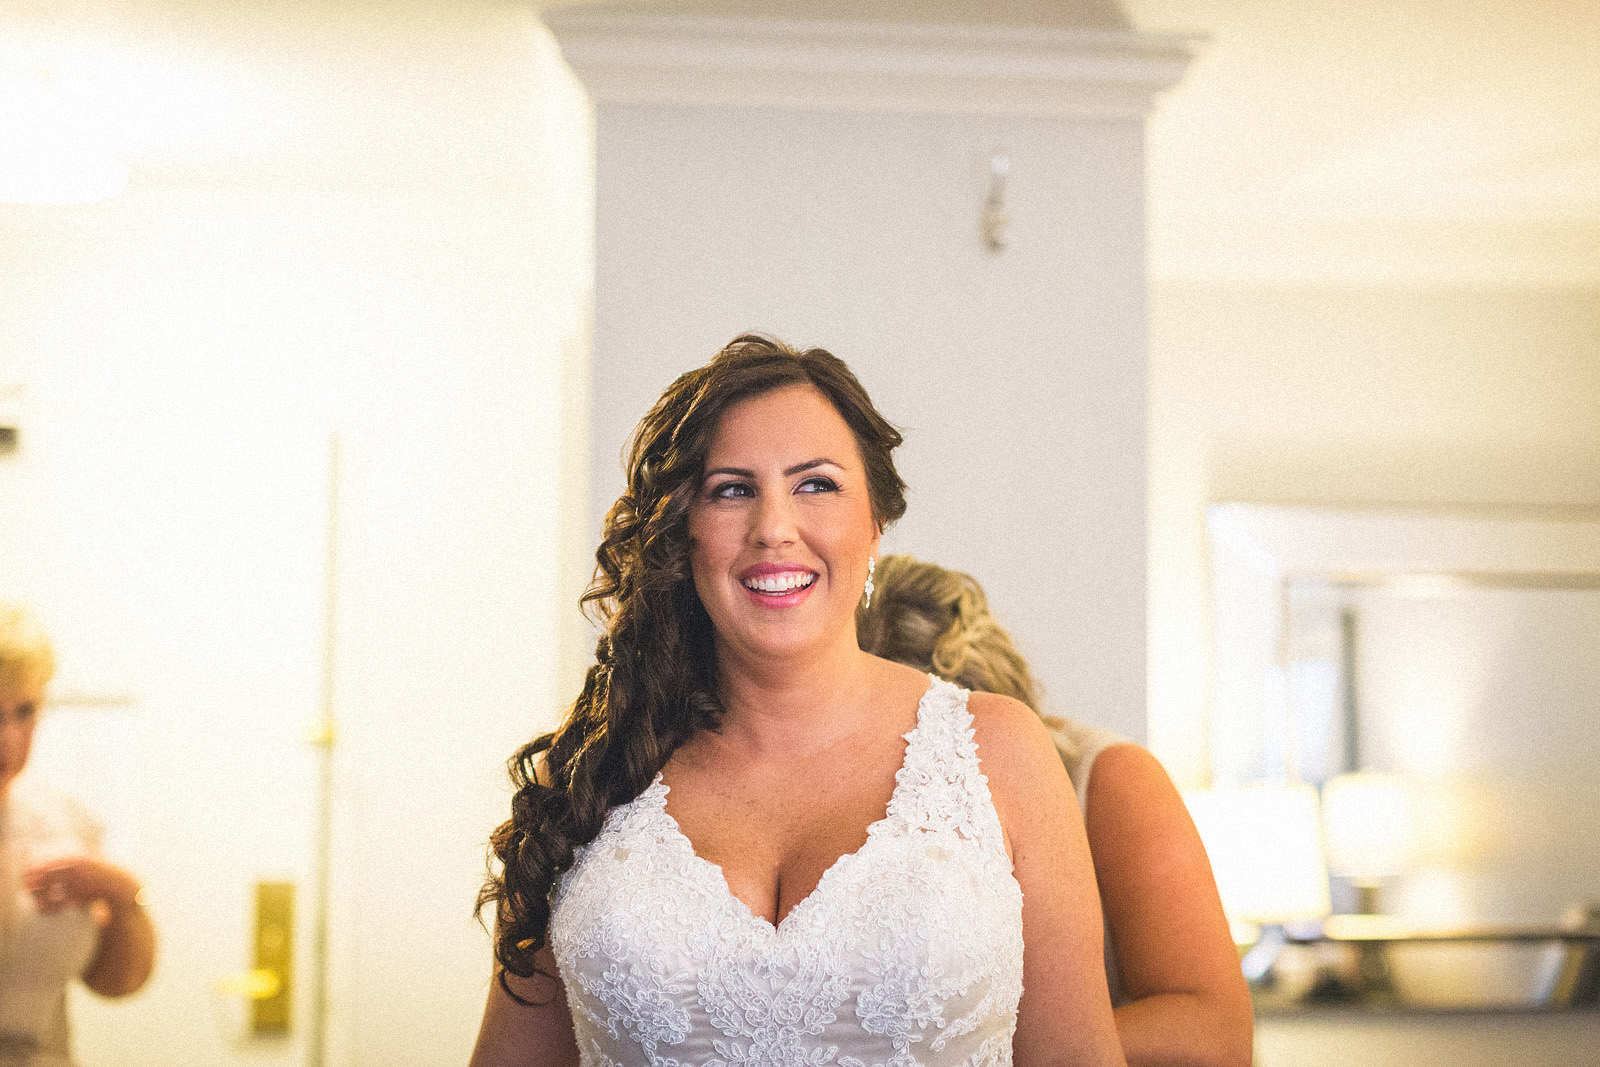 Bride smiles while getting ready